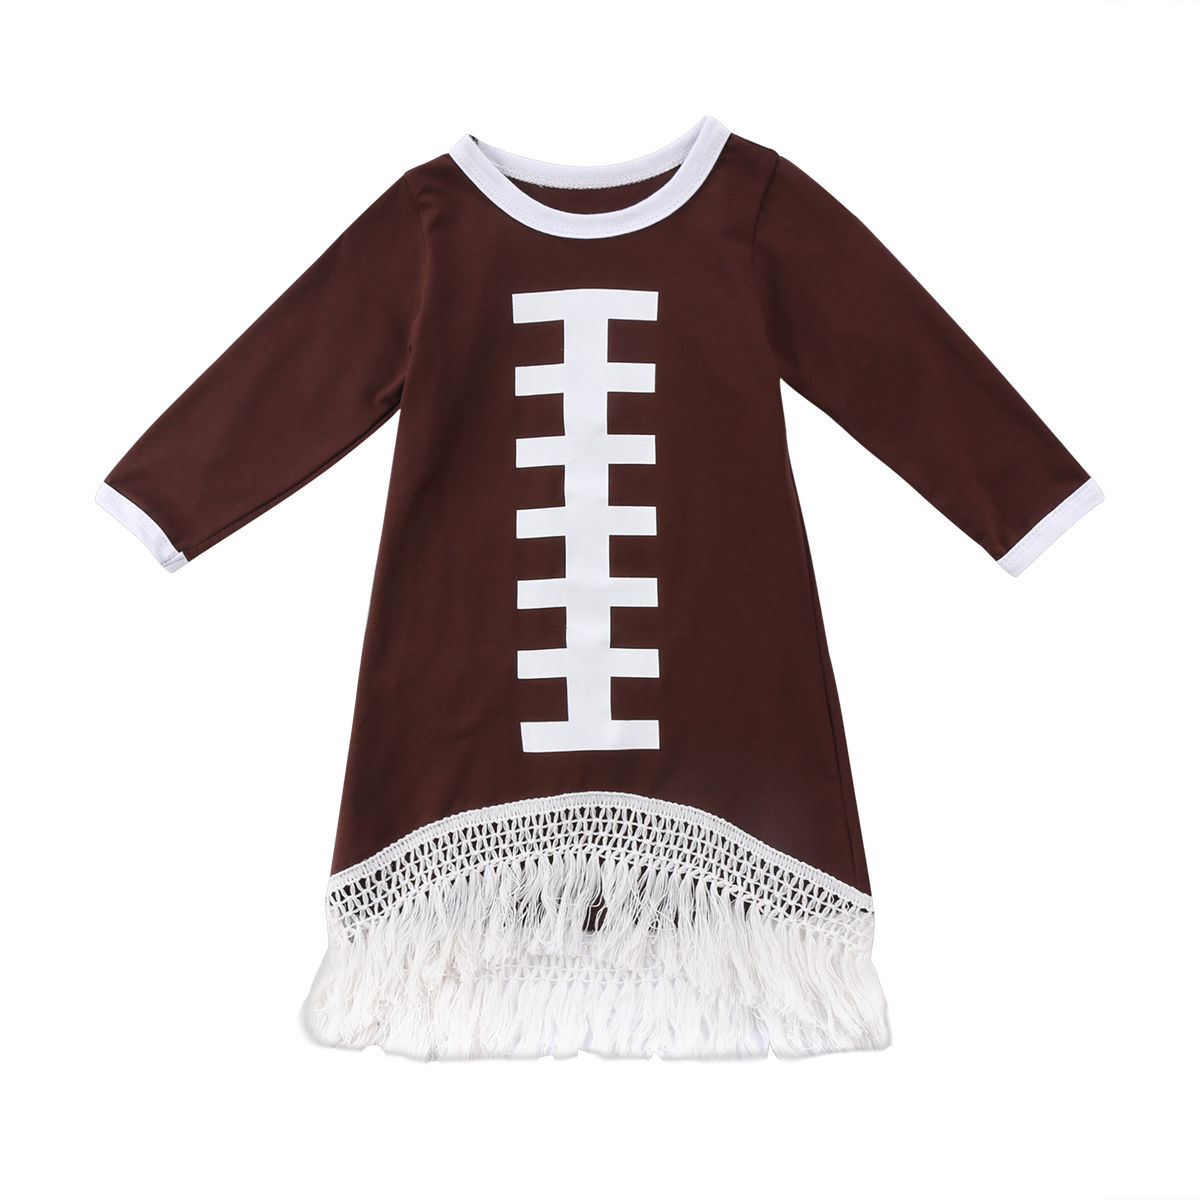 0--5T Toddler Kids Baby Girl Long Sleeve Football Tassels Dress Little Girls Party Tassel Long Sleeve Dresses Clothes0--5T Toddler Kids Baby Girl Long Sleeve Football Tassels Dress Little Girls Party Tassel Long Sleeve Dresses Clothes